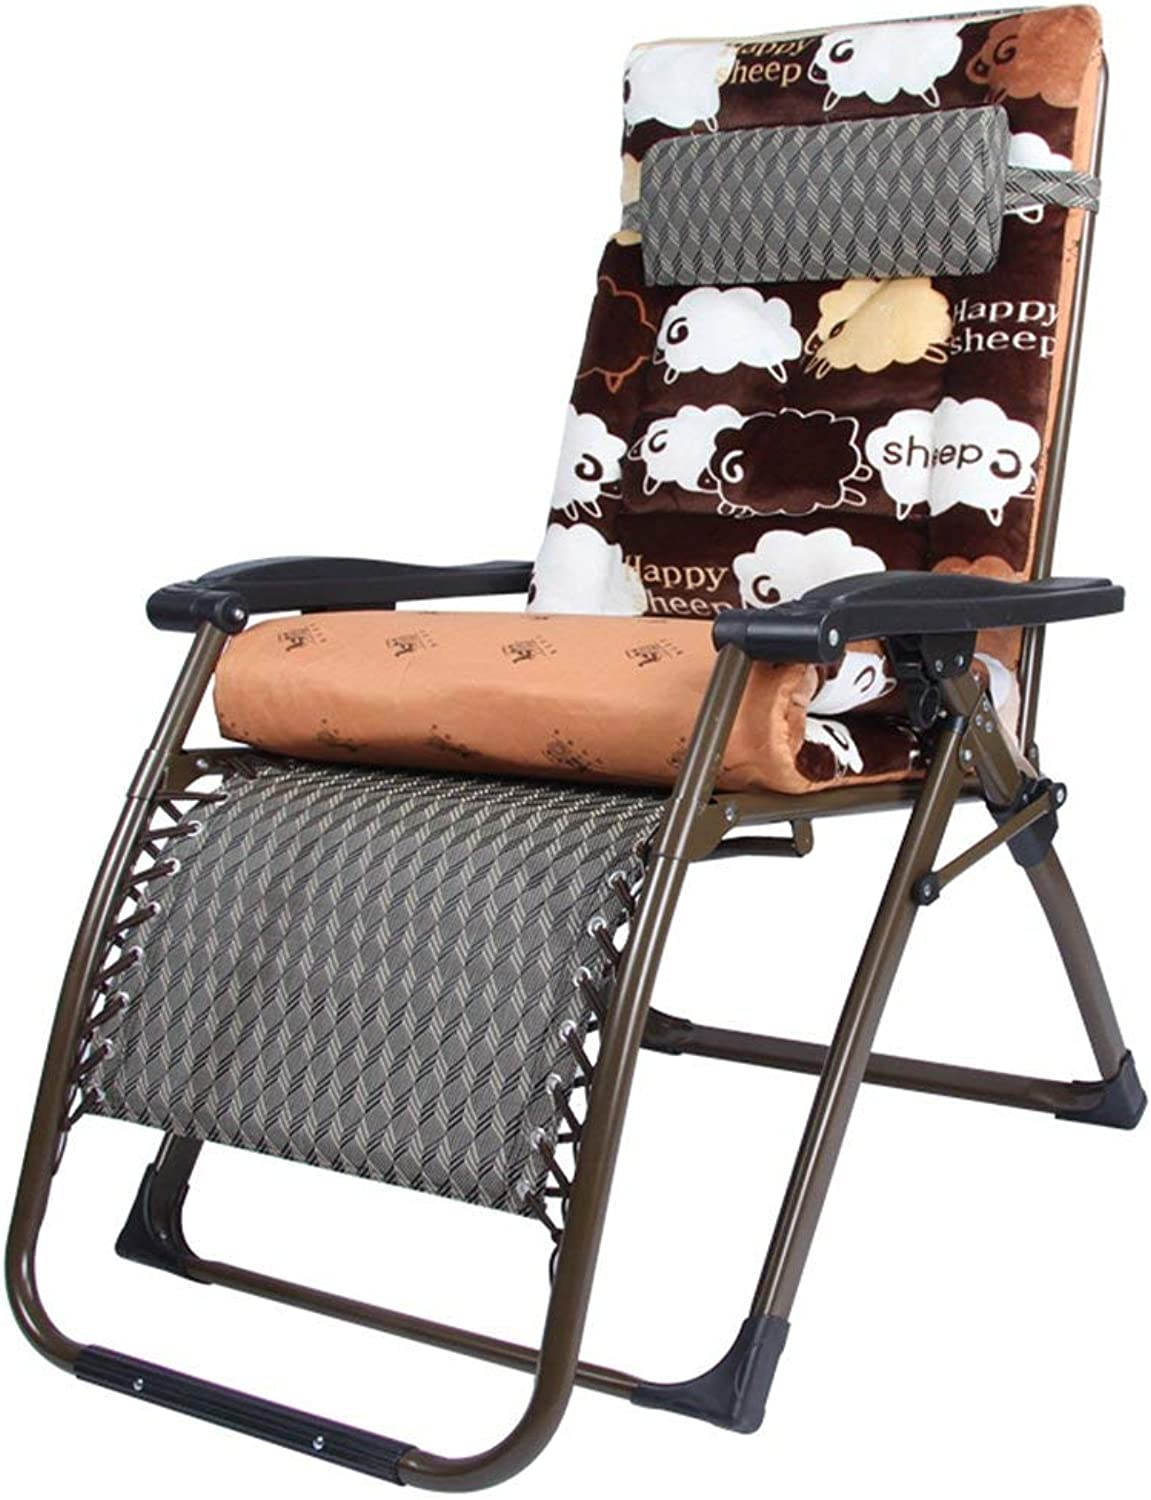 Rocking Chairs Folding Chair Zero Gravity Lounge Chair Padded Adjustable Recliner with Headrest Support 300Kg,B